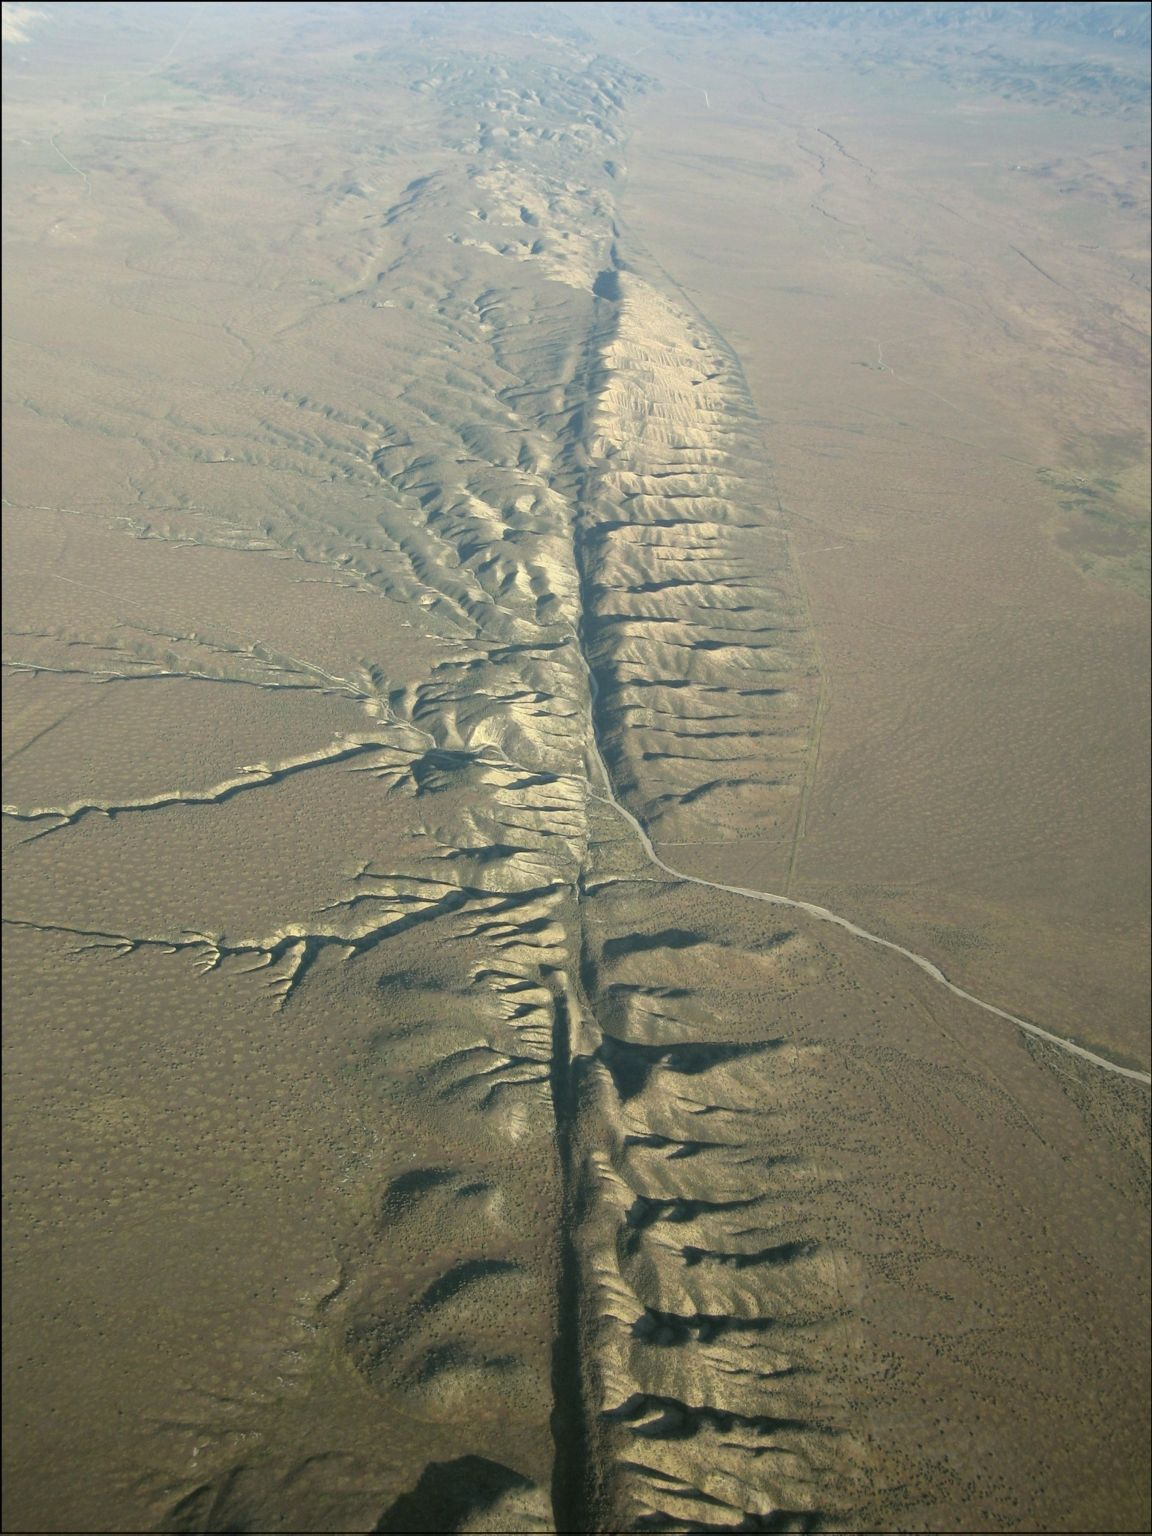 san andres fault summary Lawrence discovers that the san andreas fault is moving and will cause a huge earthquake in los angeles and san francisco ray needs to travel to help the victims from the dam and daniel offers to take blake to san francisco since he has a meeting in the city.